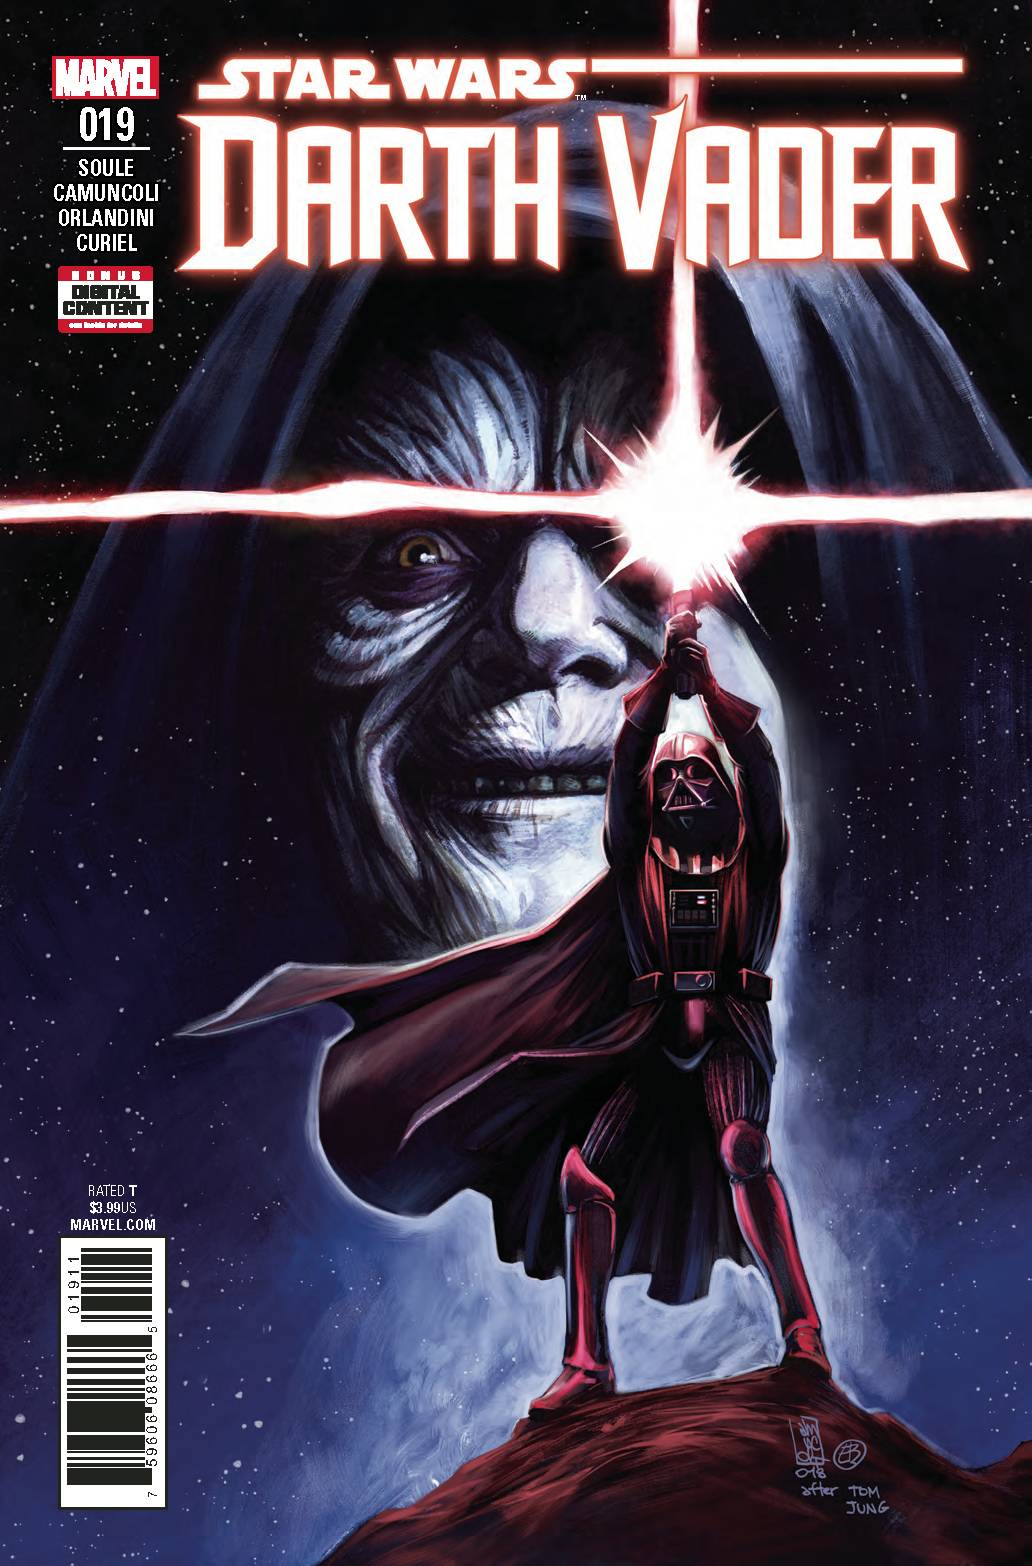 Star Wars Darth Vader # 19